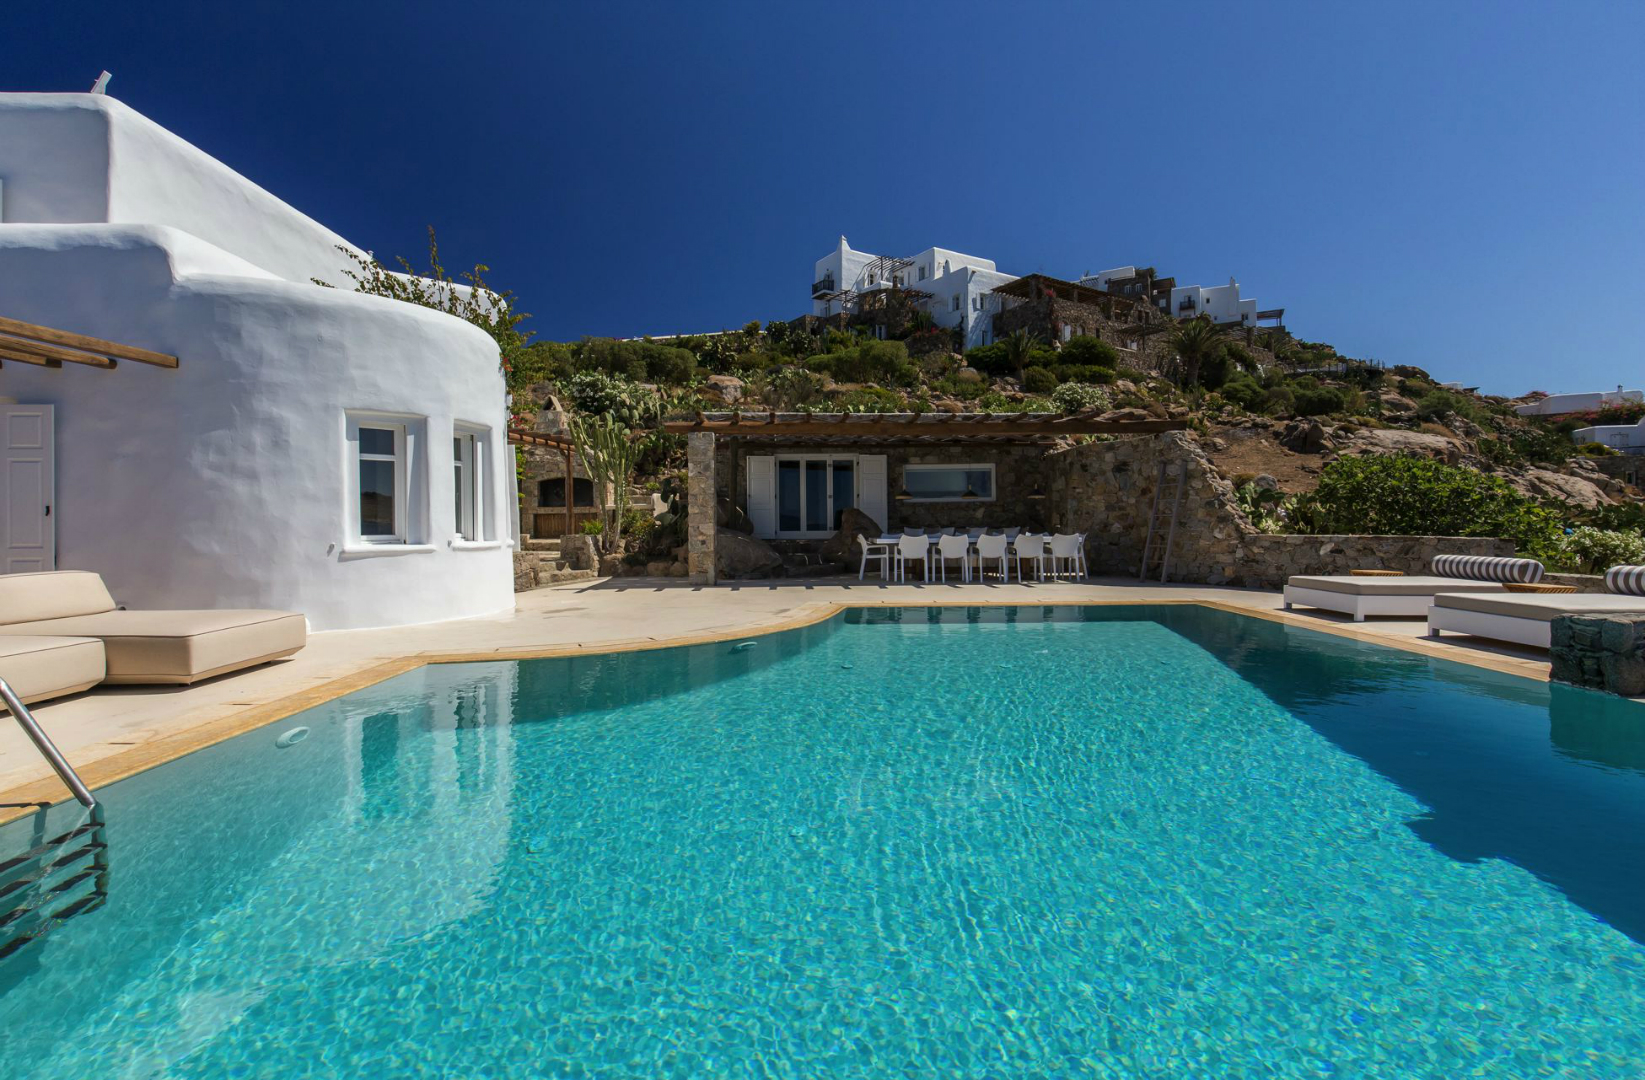 luxury-mykonos-kymothoe1 (5).jpg